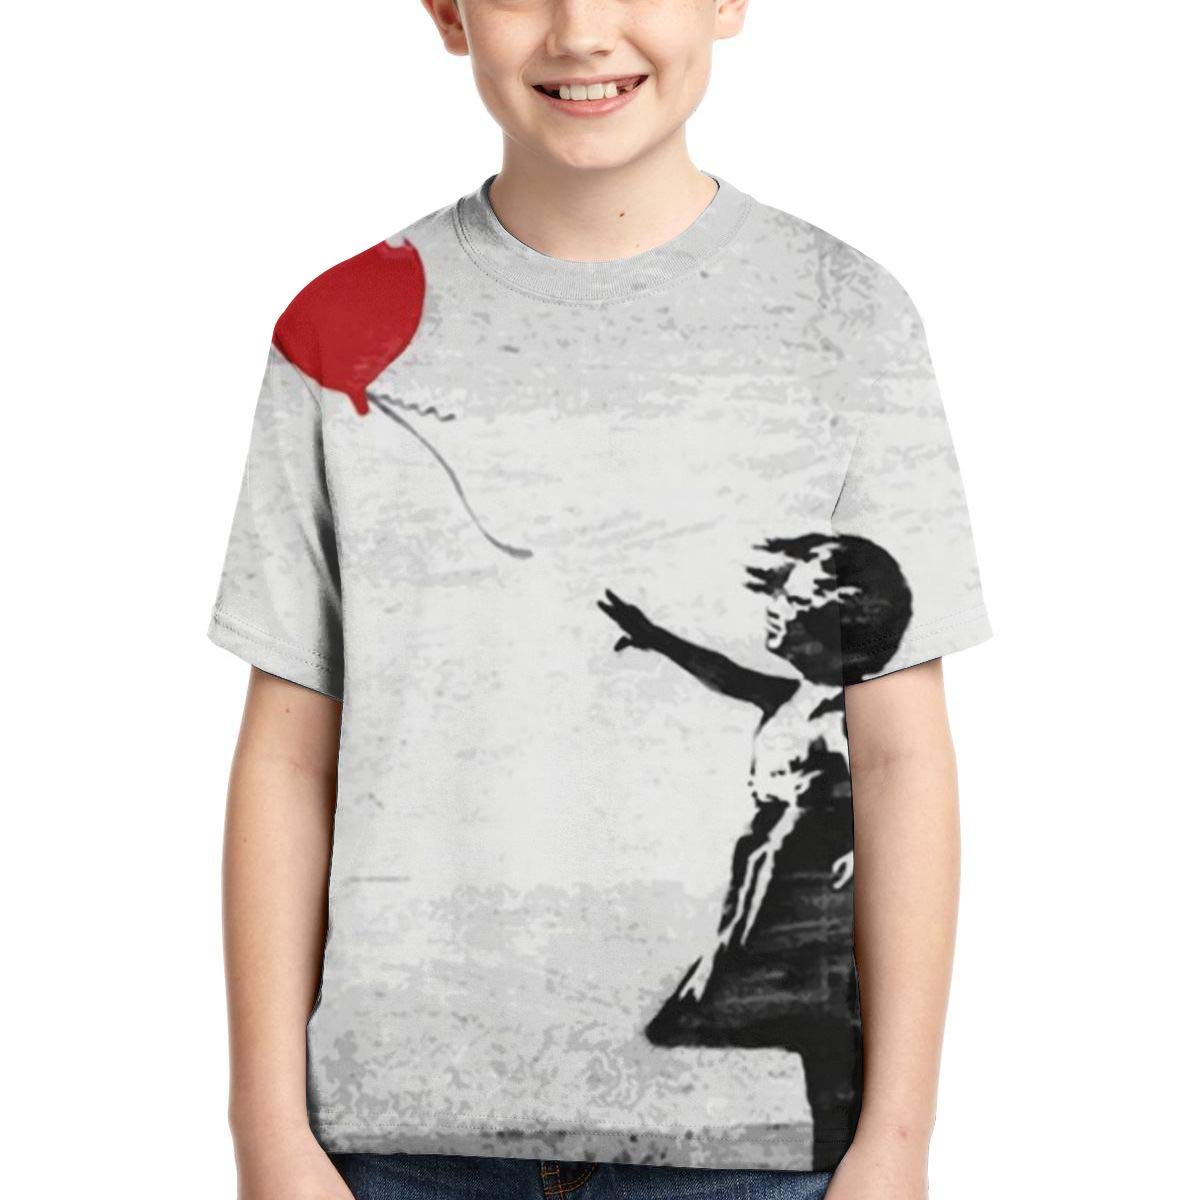 AMODECO There is Always Hope Balloon Girl 3D Printed Tee T-Shirt for Youth Teenager Boys Girls